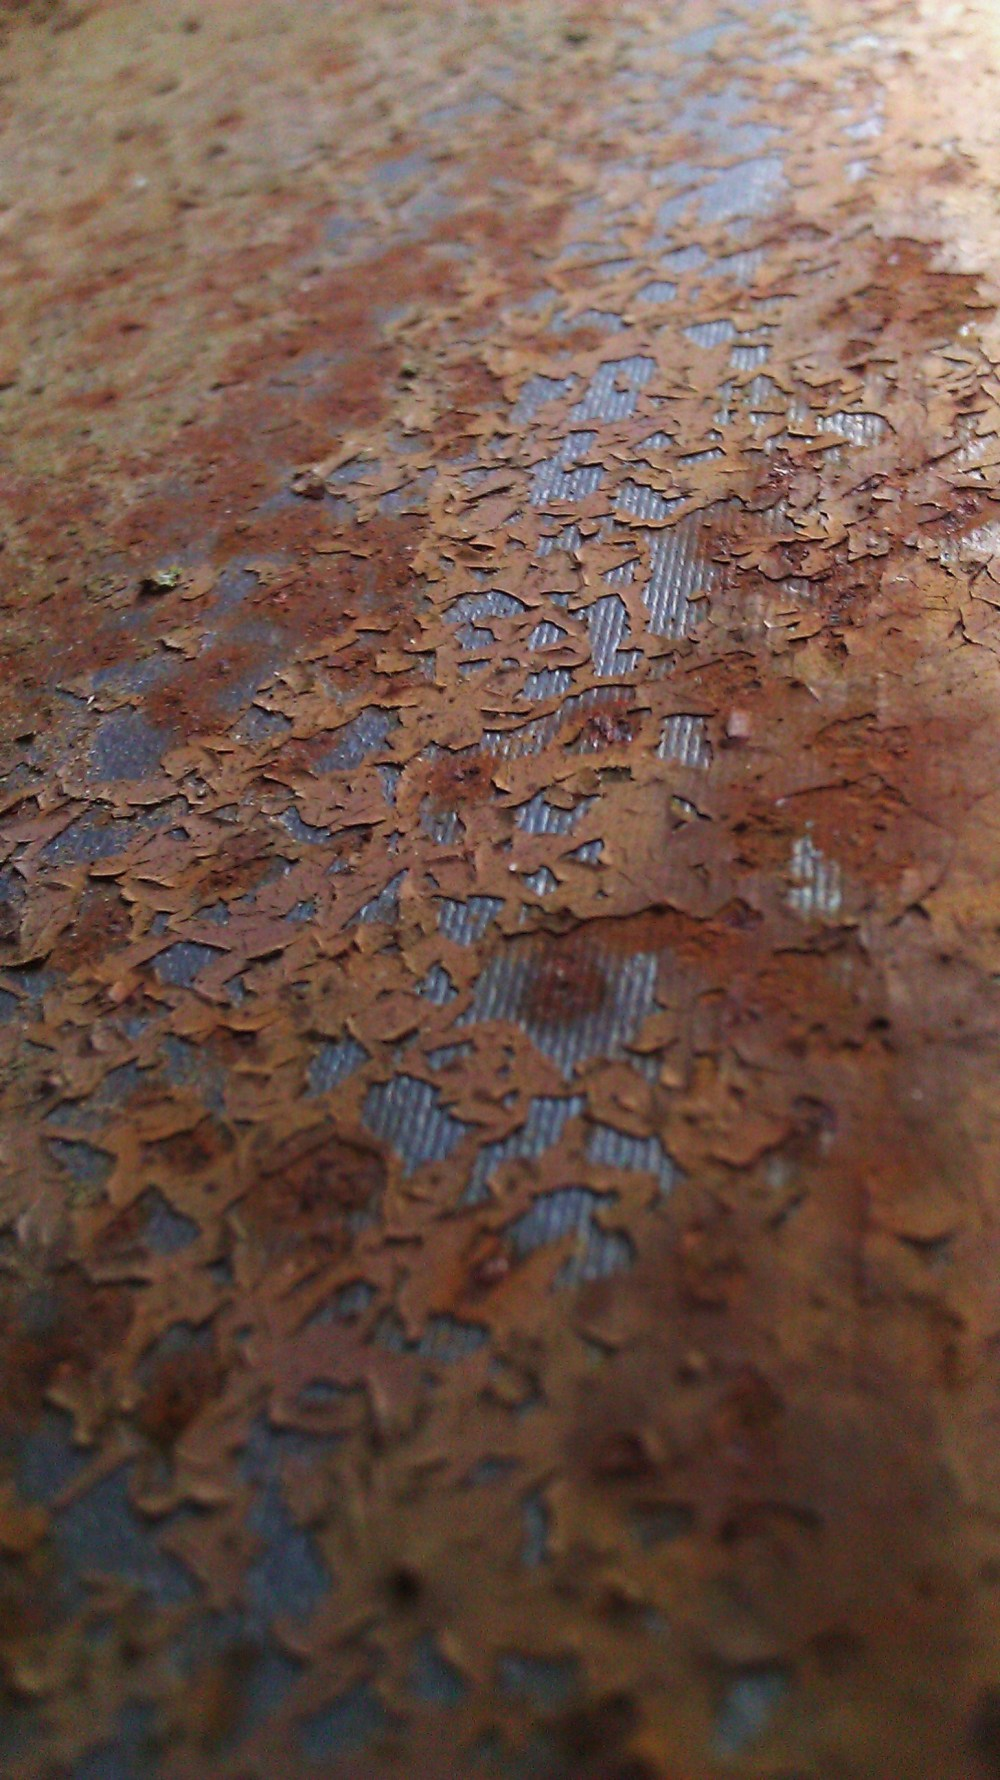 Tanya Mikulas, photographer, IMAG5558 oxidation